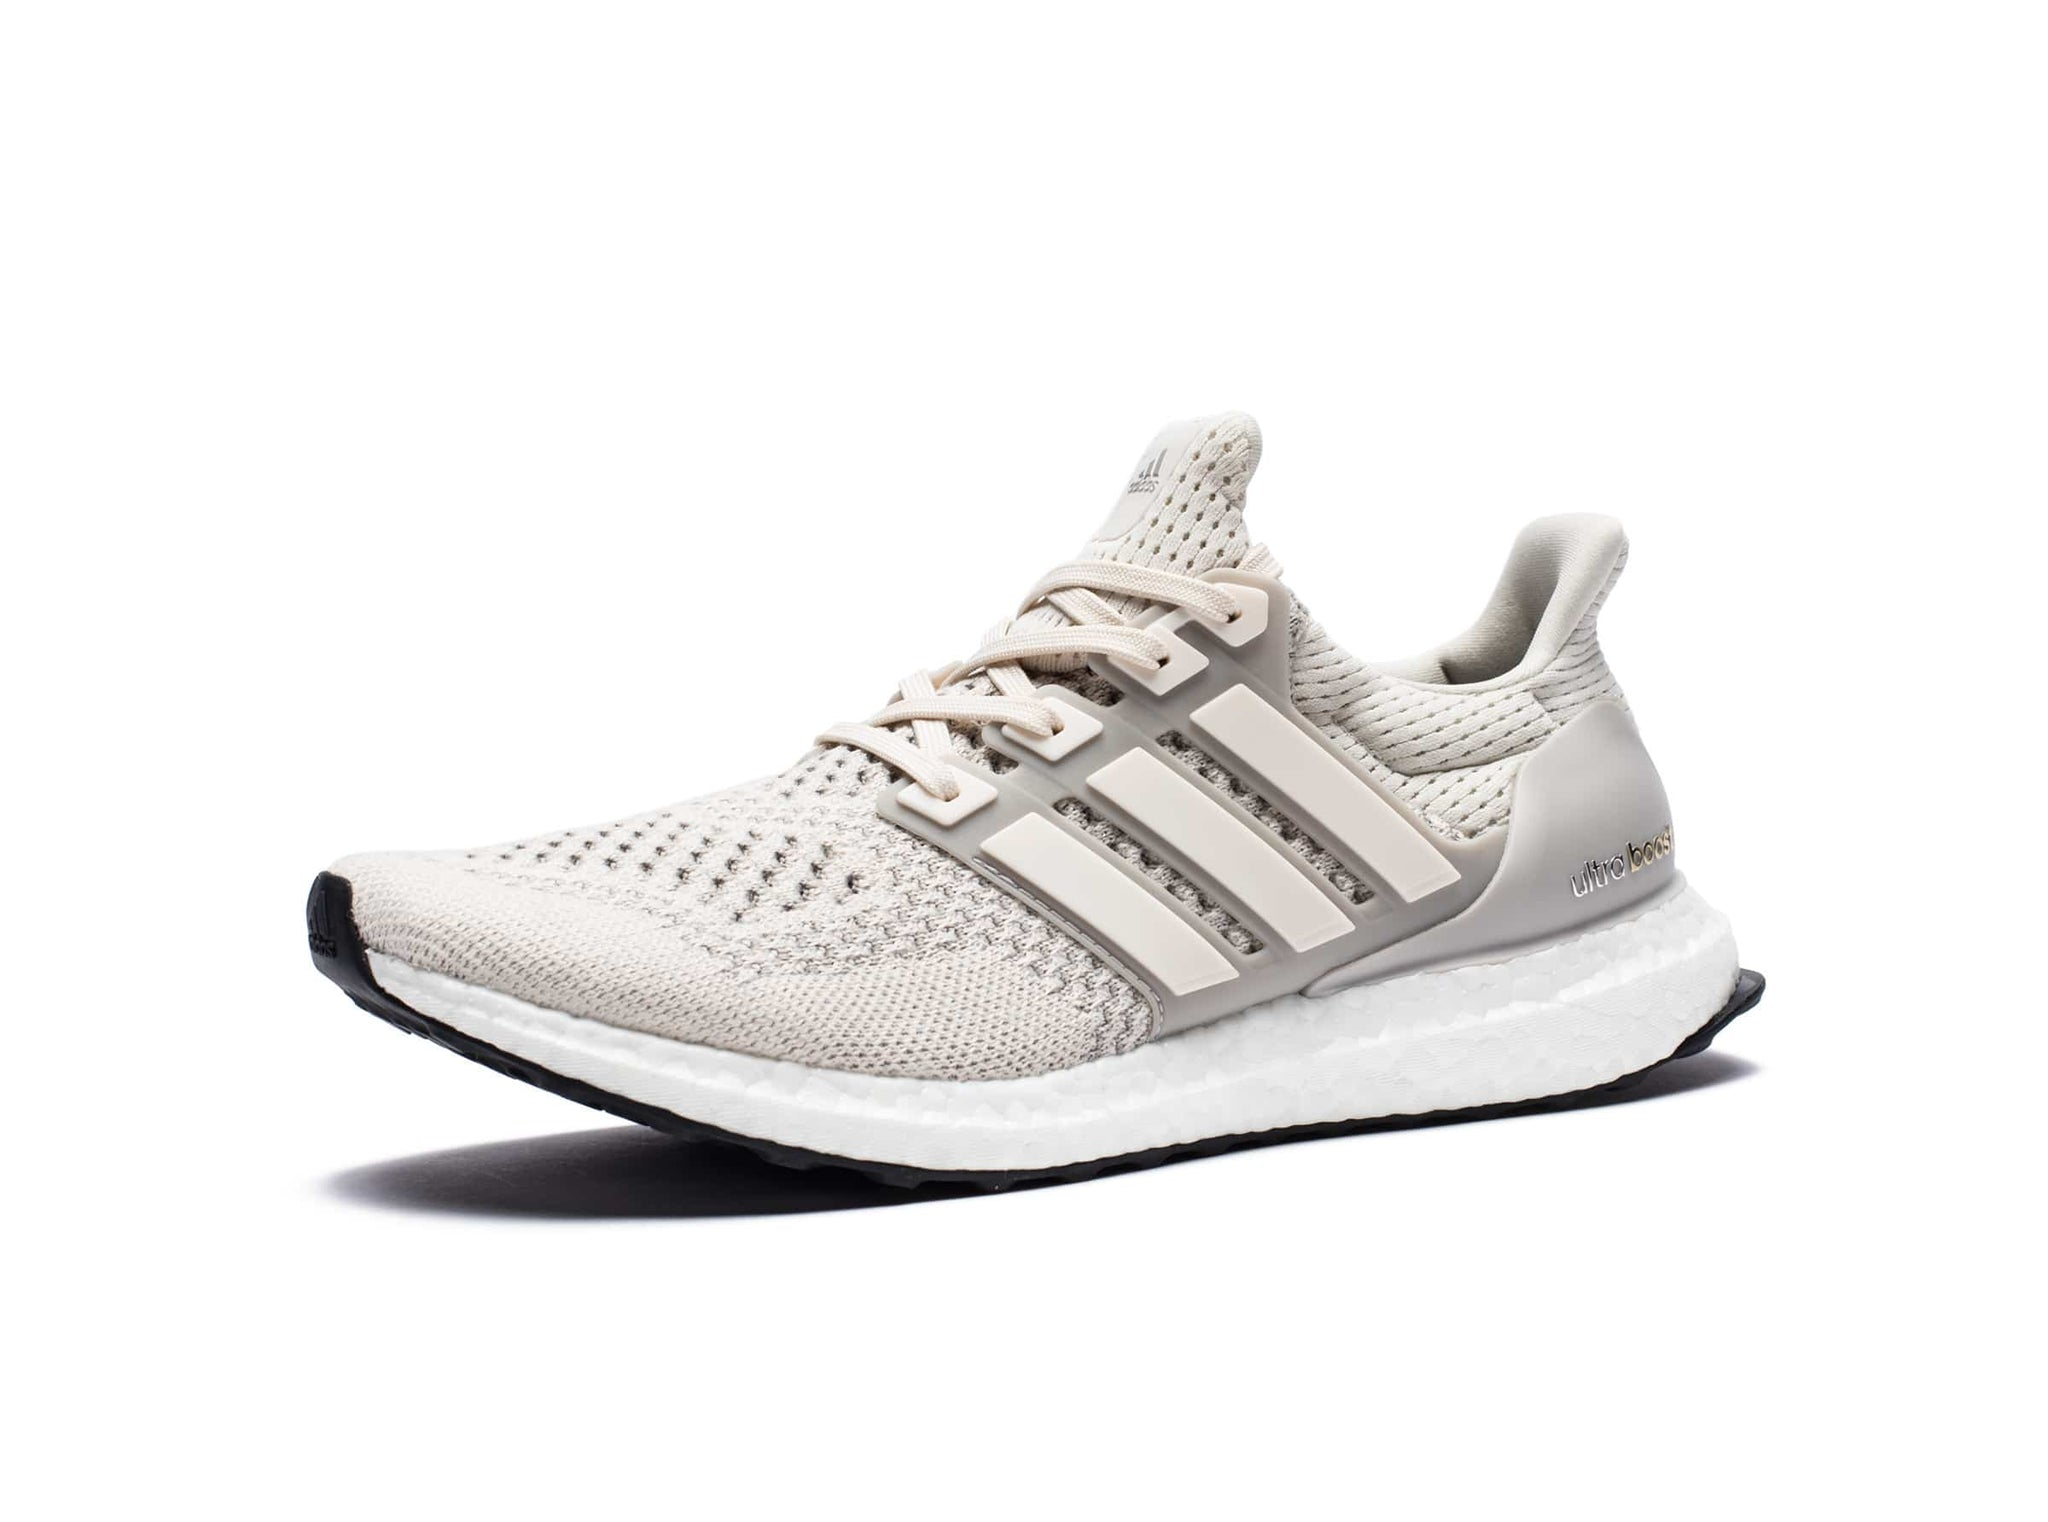 ULTRABOOST LTD - TALC/CHALKWHITE/BLACK